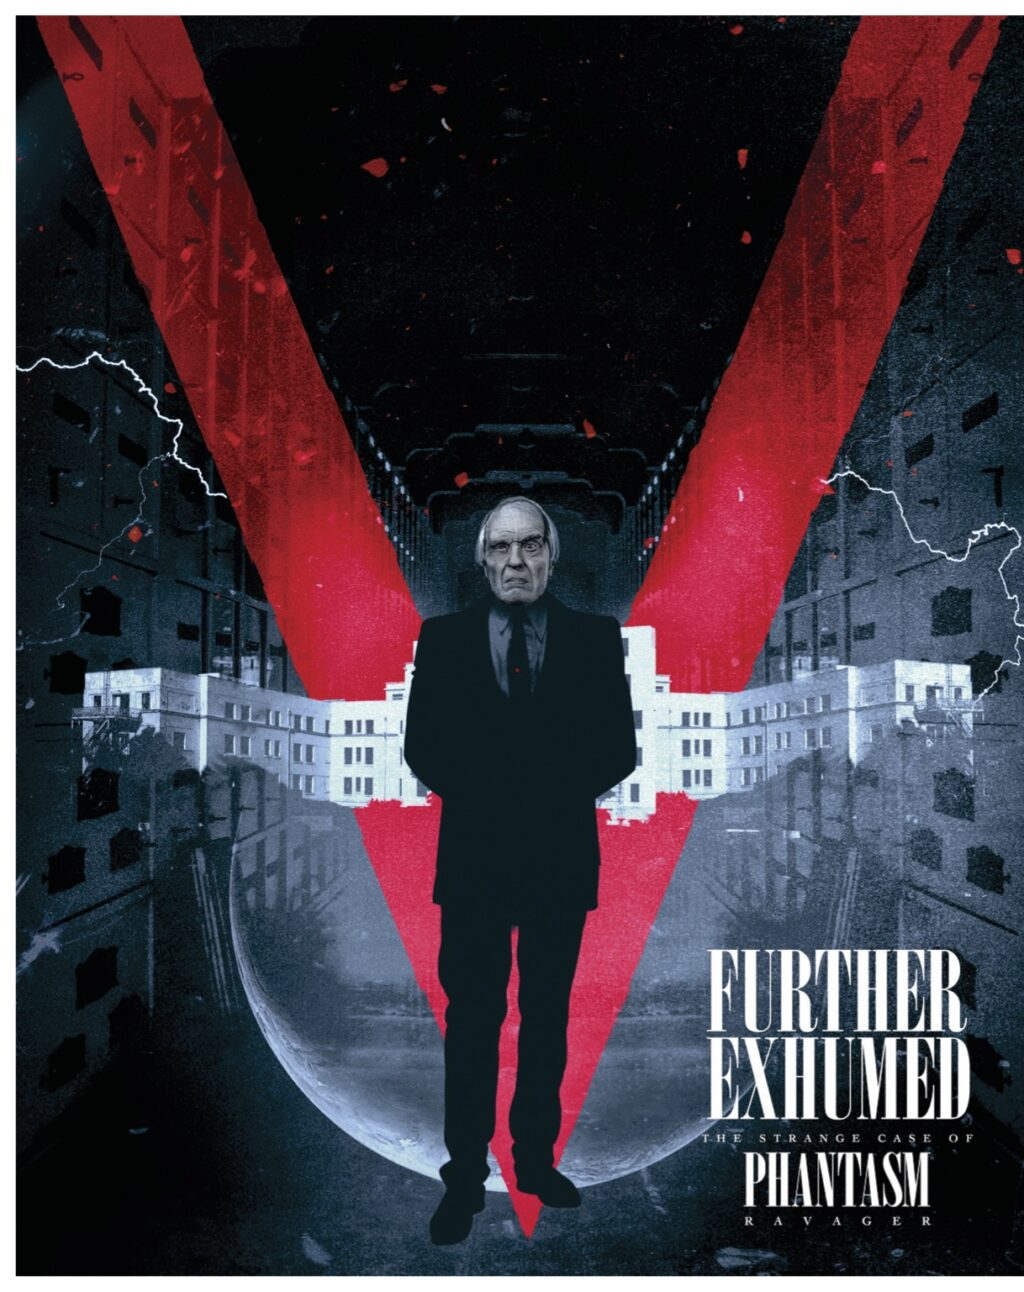 Further Exhumed Excerpt1 1024x1292 - Exclusive: Read an Excerpt From Further Exhumed: The Strange Case of Phantasm Ravager